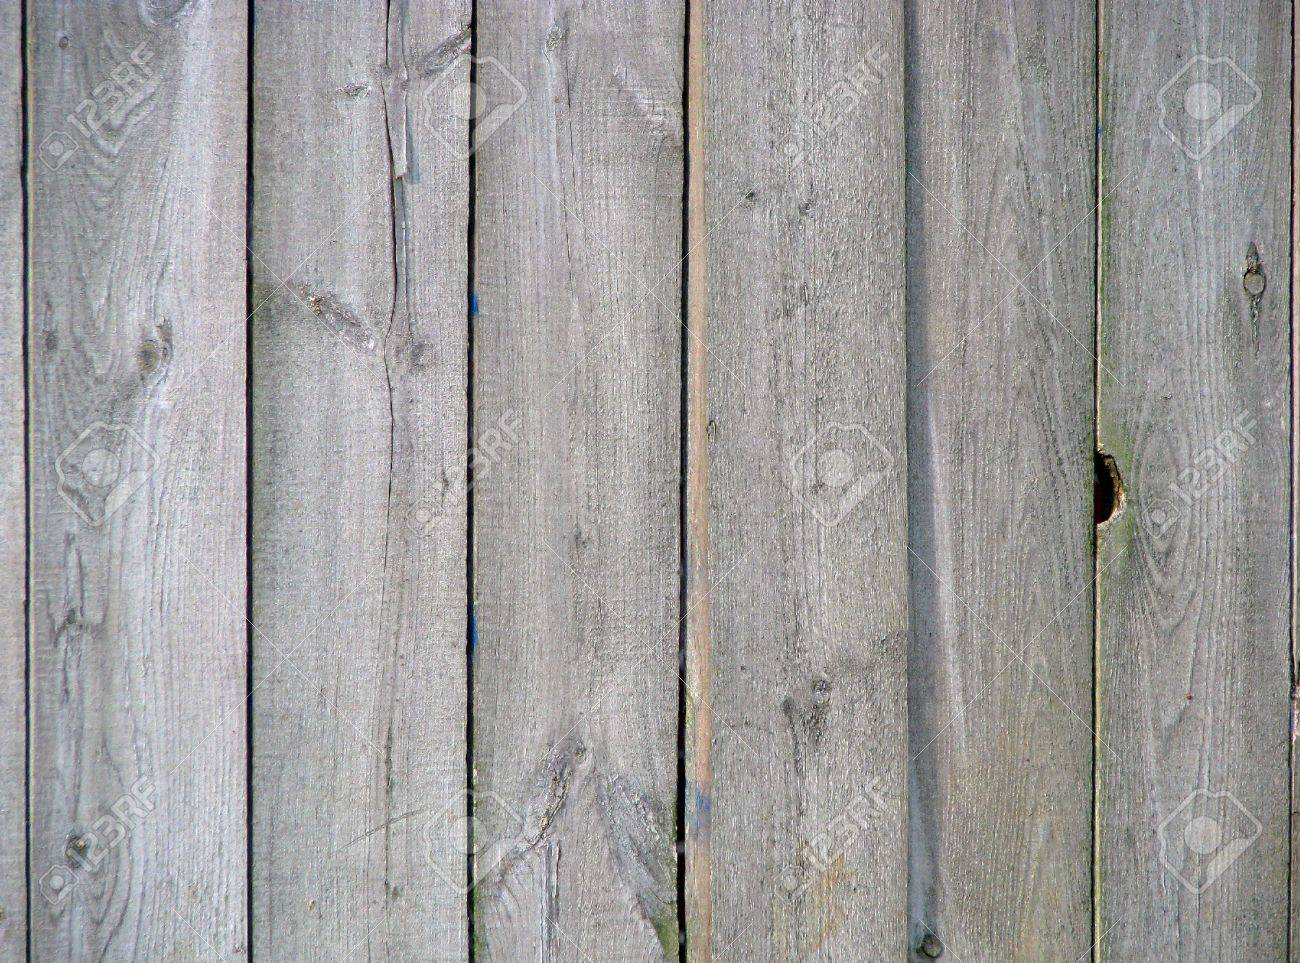 wooden fence panels close up texture background stock photo